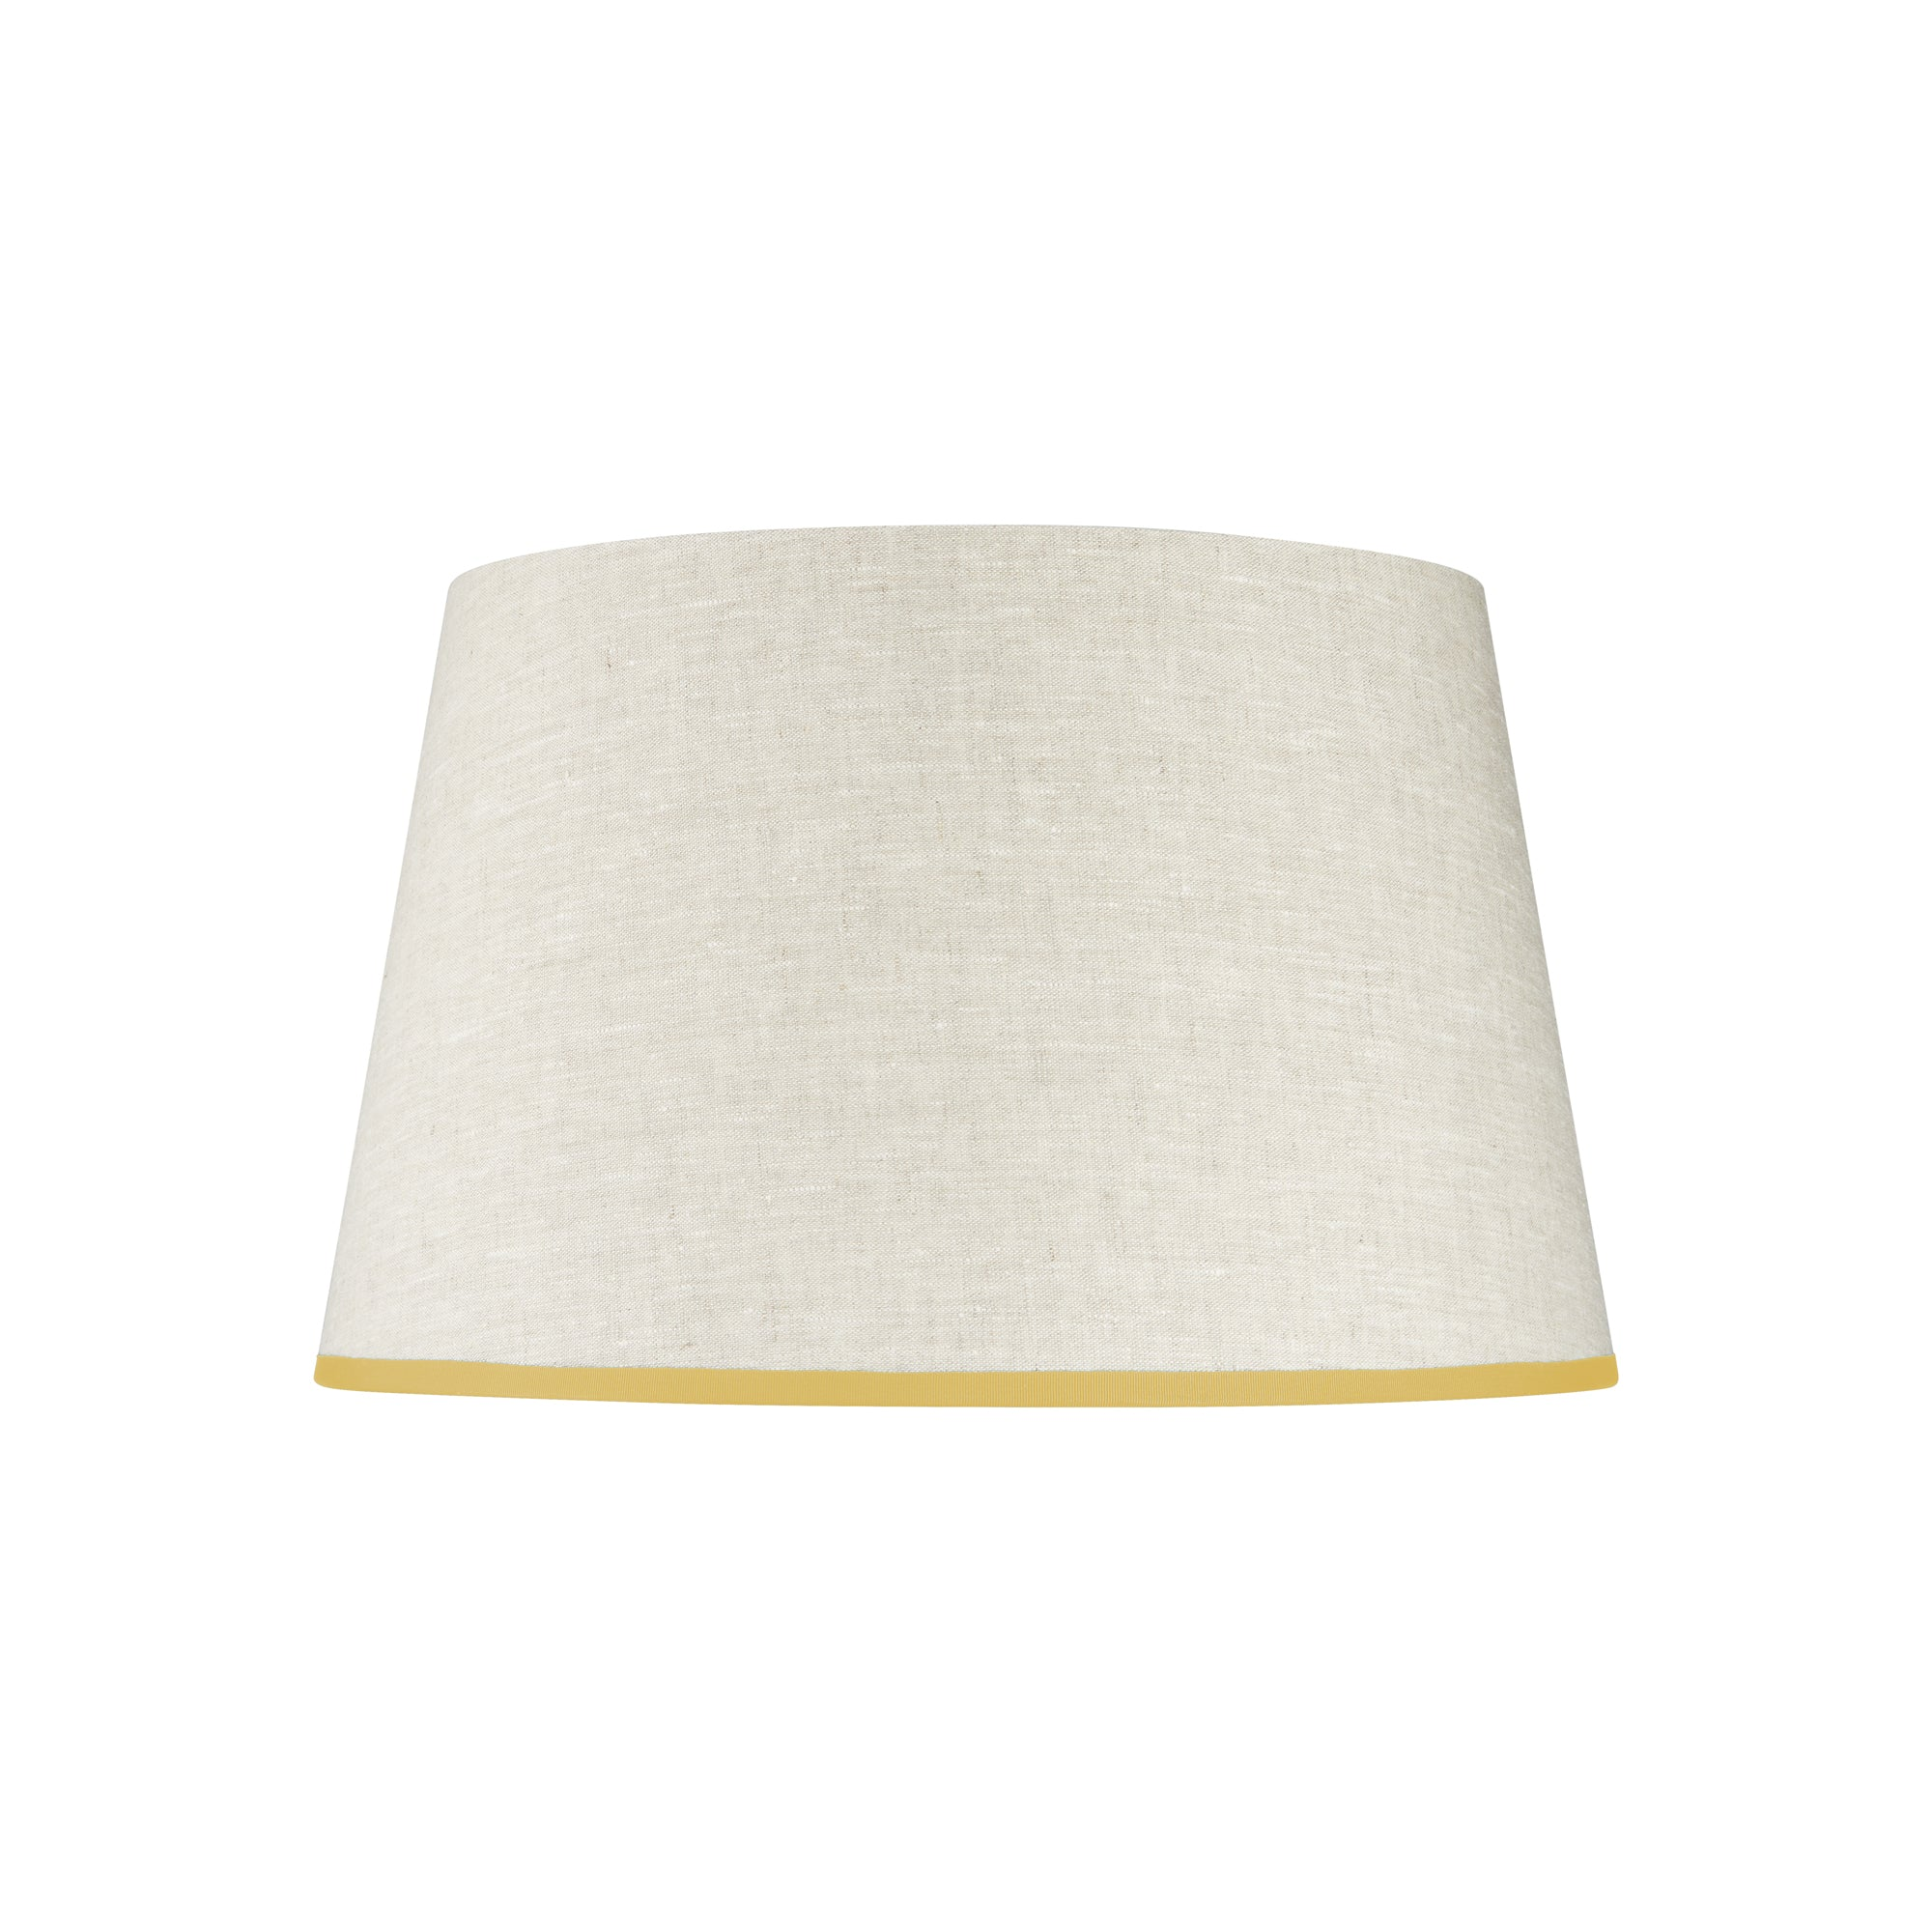 STRETCHED LINEN LAMPSHADE WITH SUNNY SIDE UP TRIM